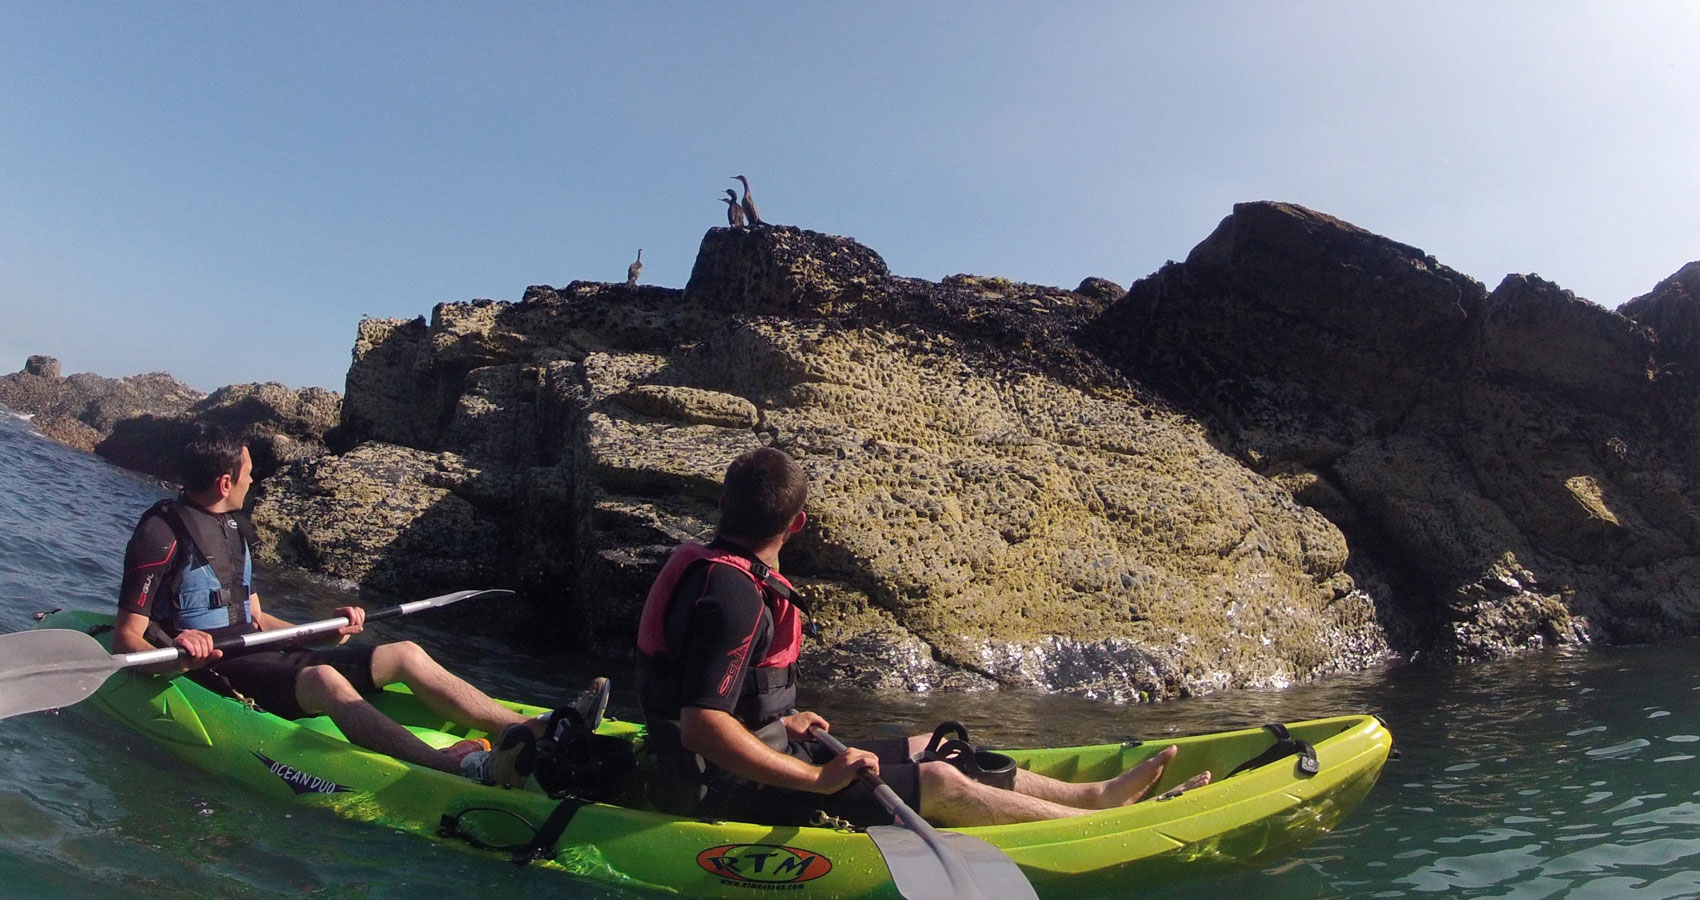 E.g. 'Kayak tours Cornwall' Wildlife kayak tours.